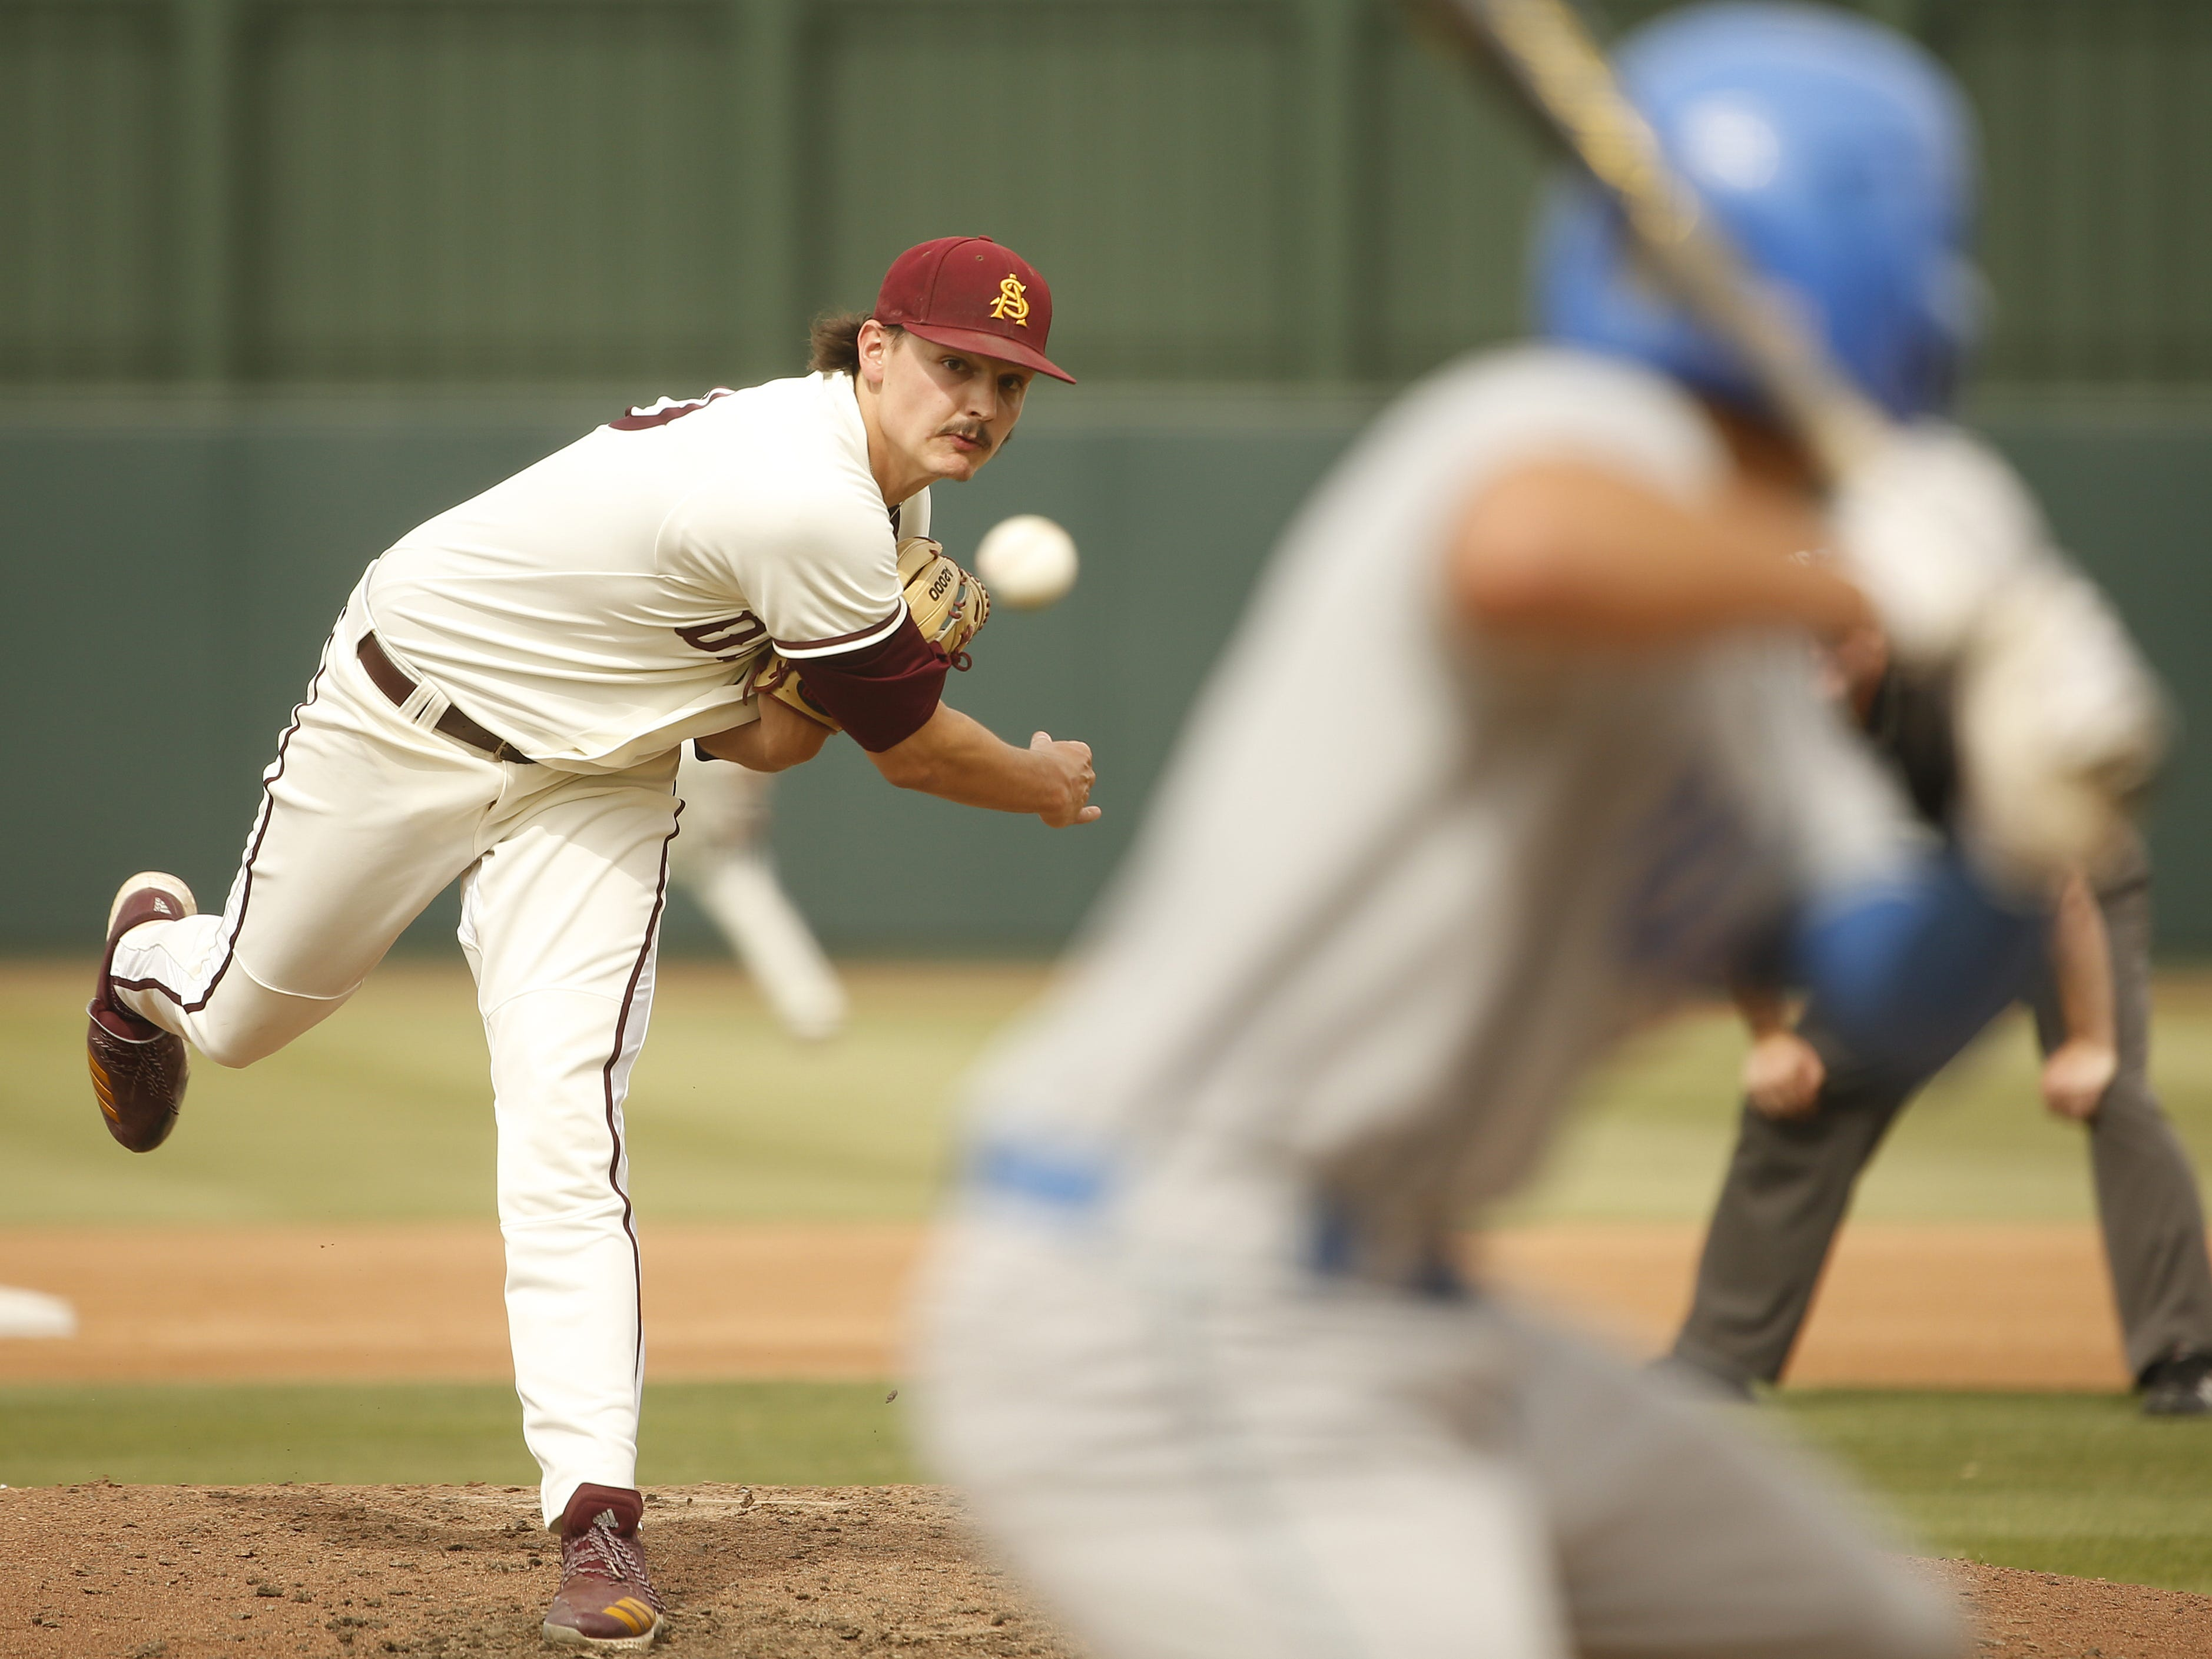 ASU's Brady Corrigan (30) pitches in relief during the fourth inning against UCLA at Phoenix Municipal Stadium in Phoenix, Ariz. on May 5, 2019.